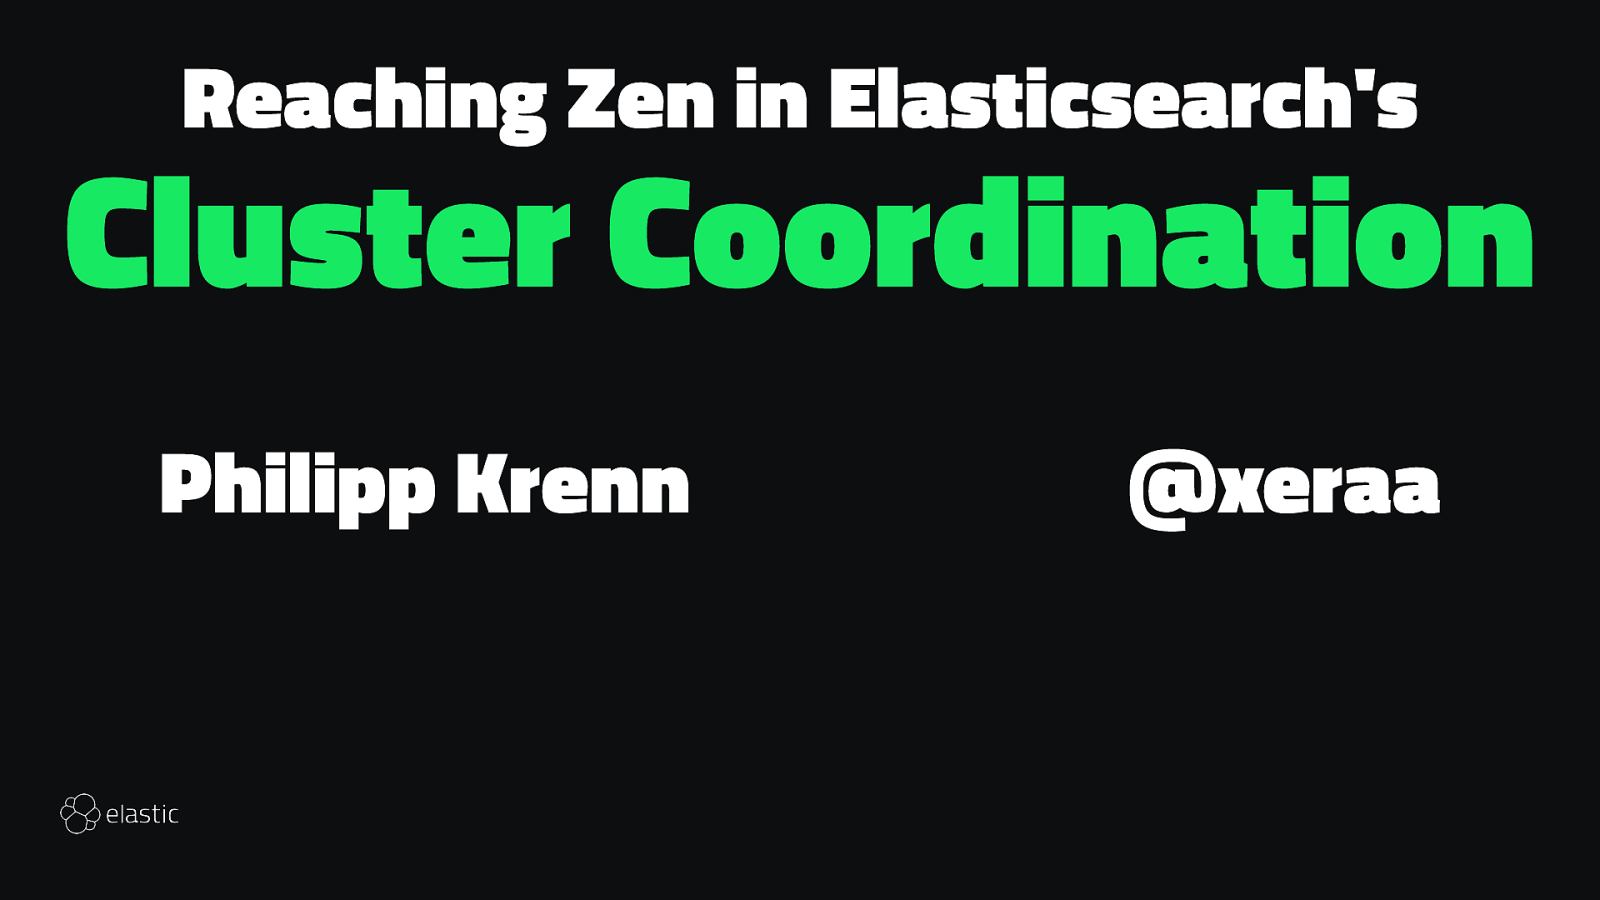 Reaching Zen in Elasticsearch's Cluster Coordination